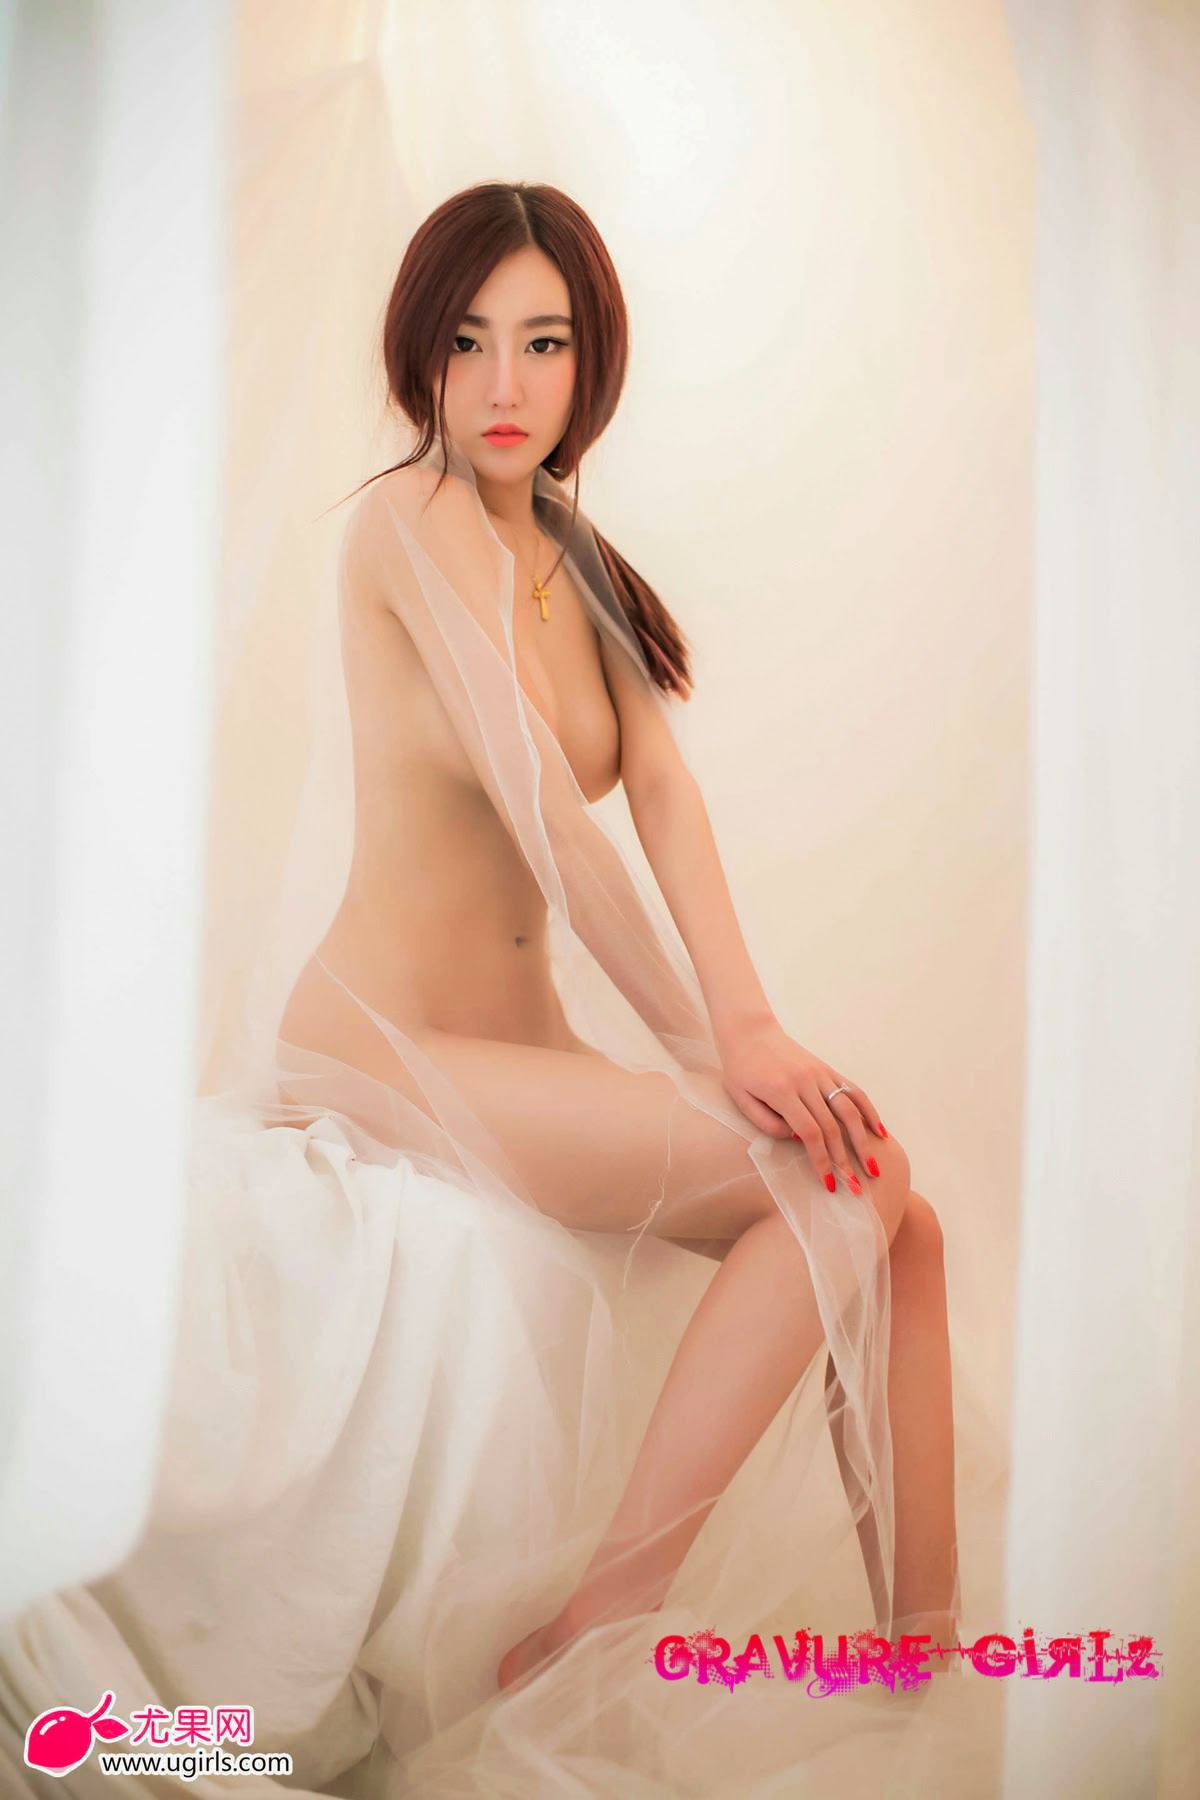 Chi Wan Guo   Young Chinese Girl Hot  Gravure Girls -9272